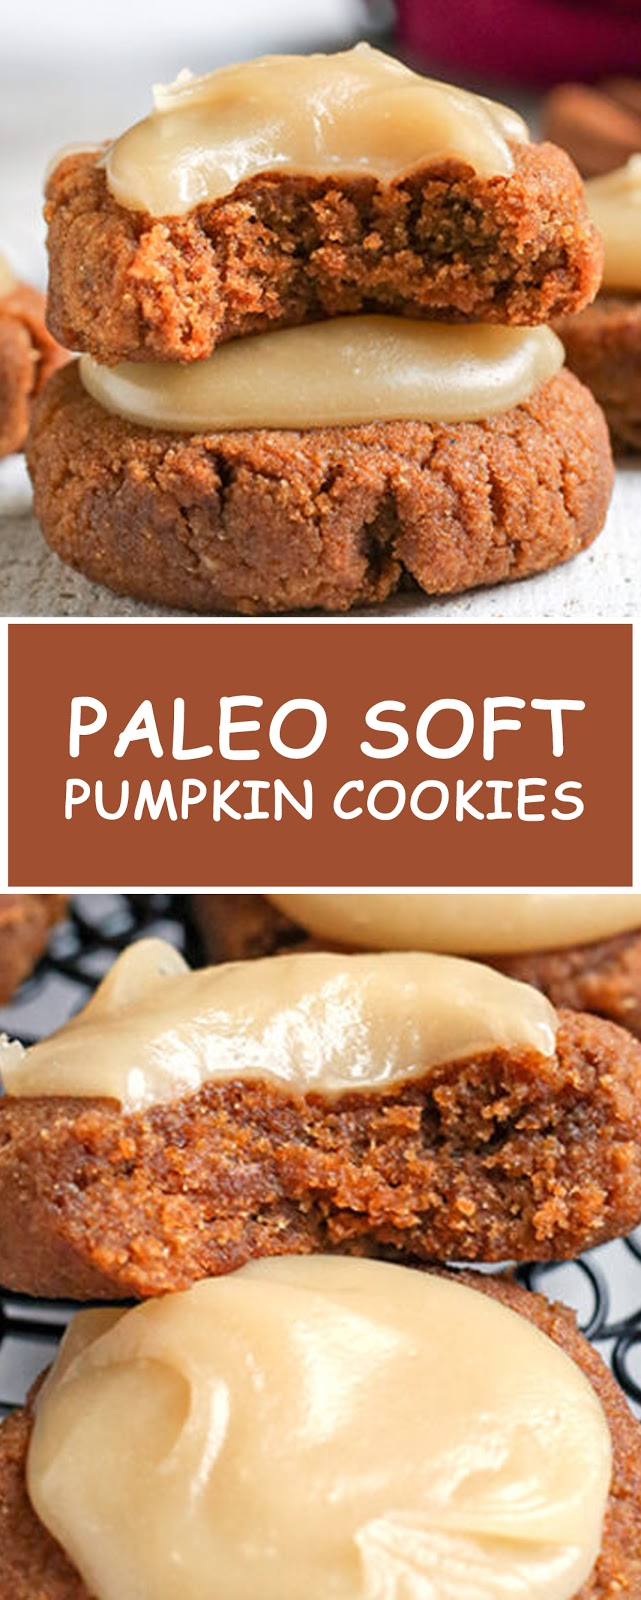 PALEO SOFT PUMPKIN COOKIES